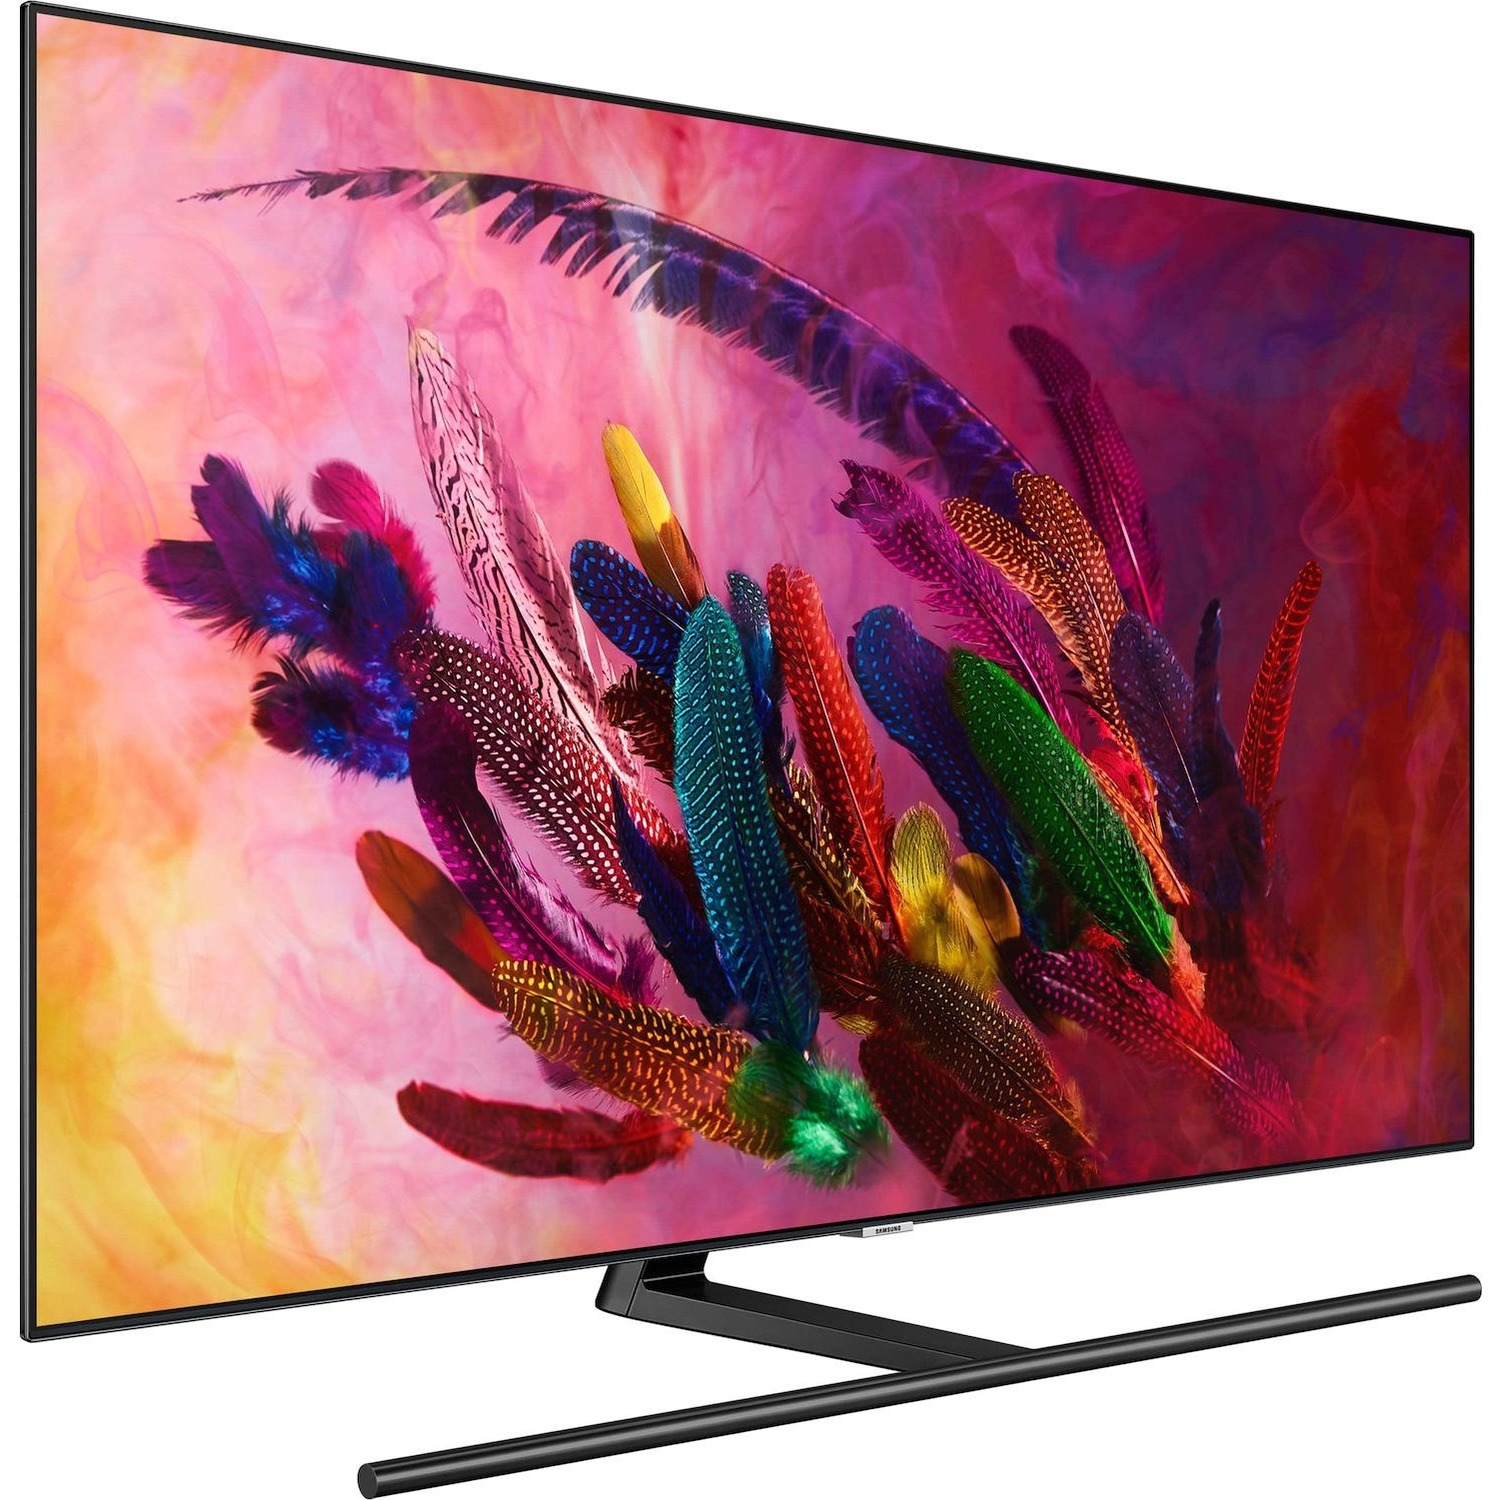 Immagine per TV LED Smart 4K UHD Samsung 55Q7FNAT da DIMOStore